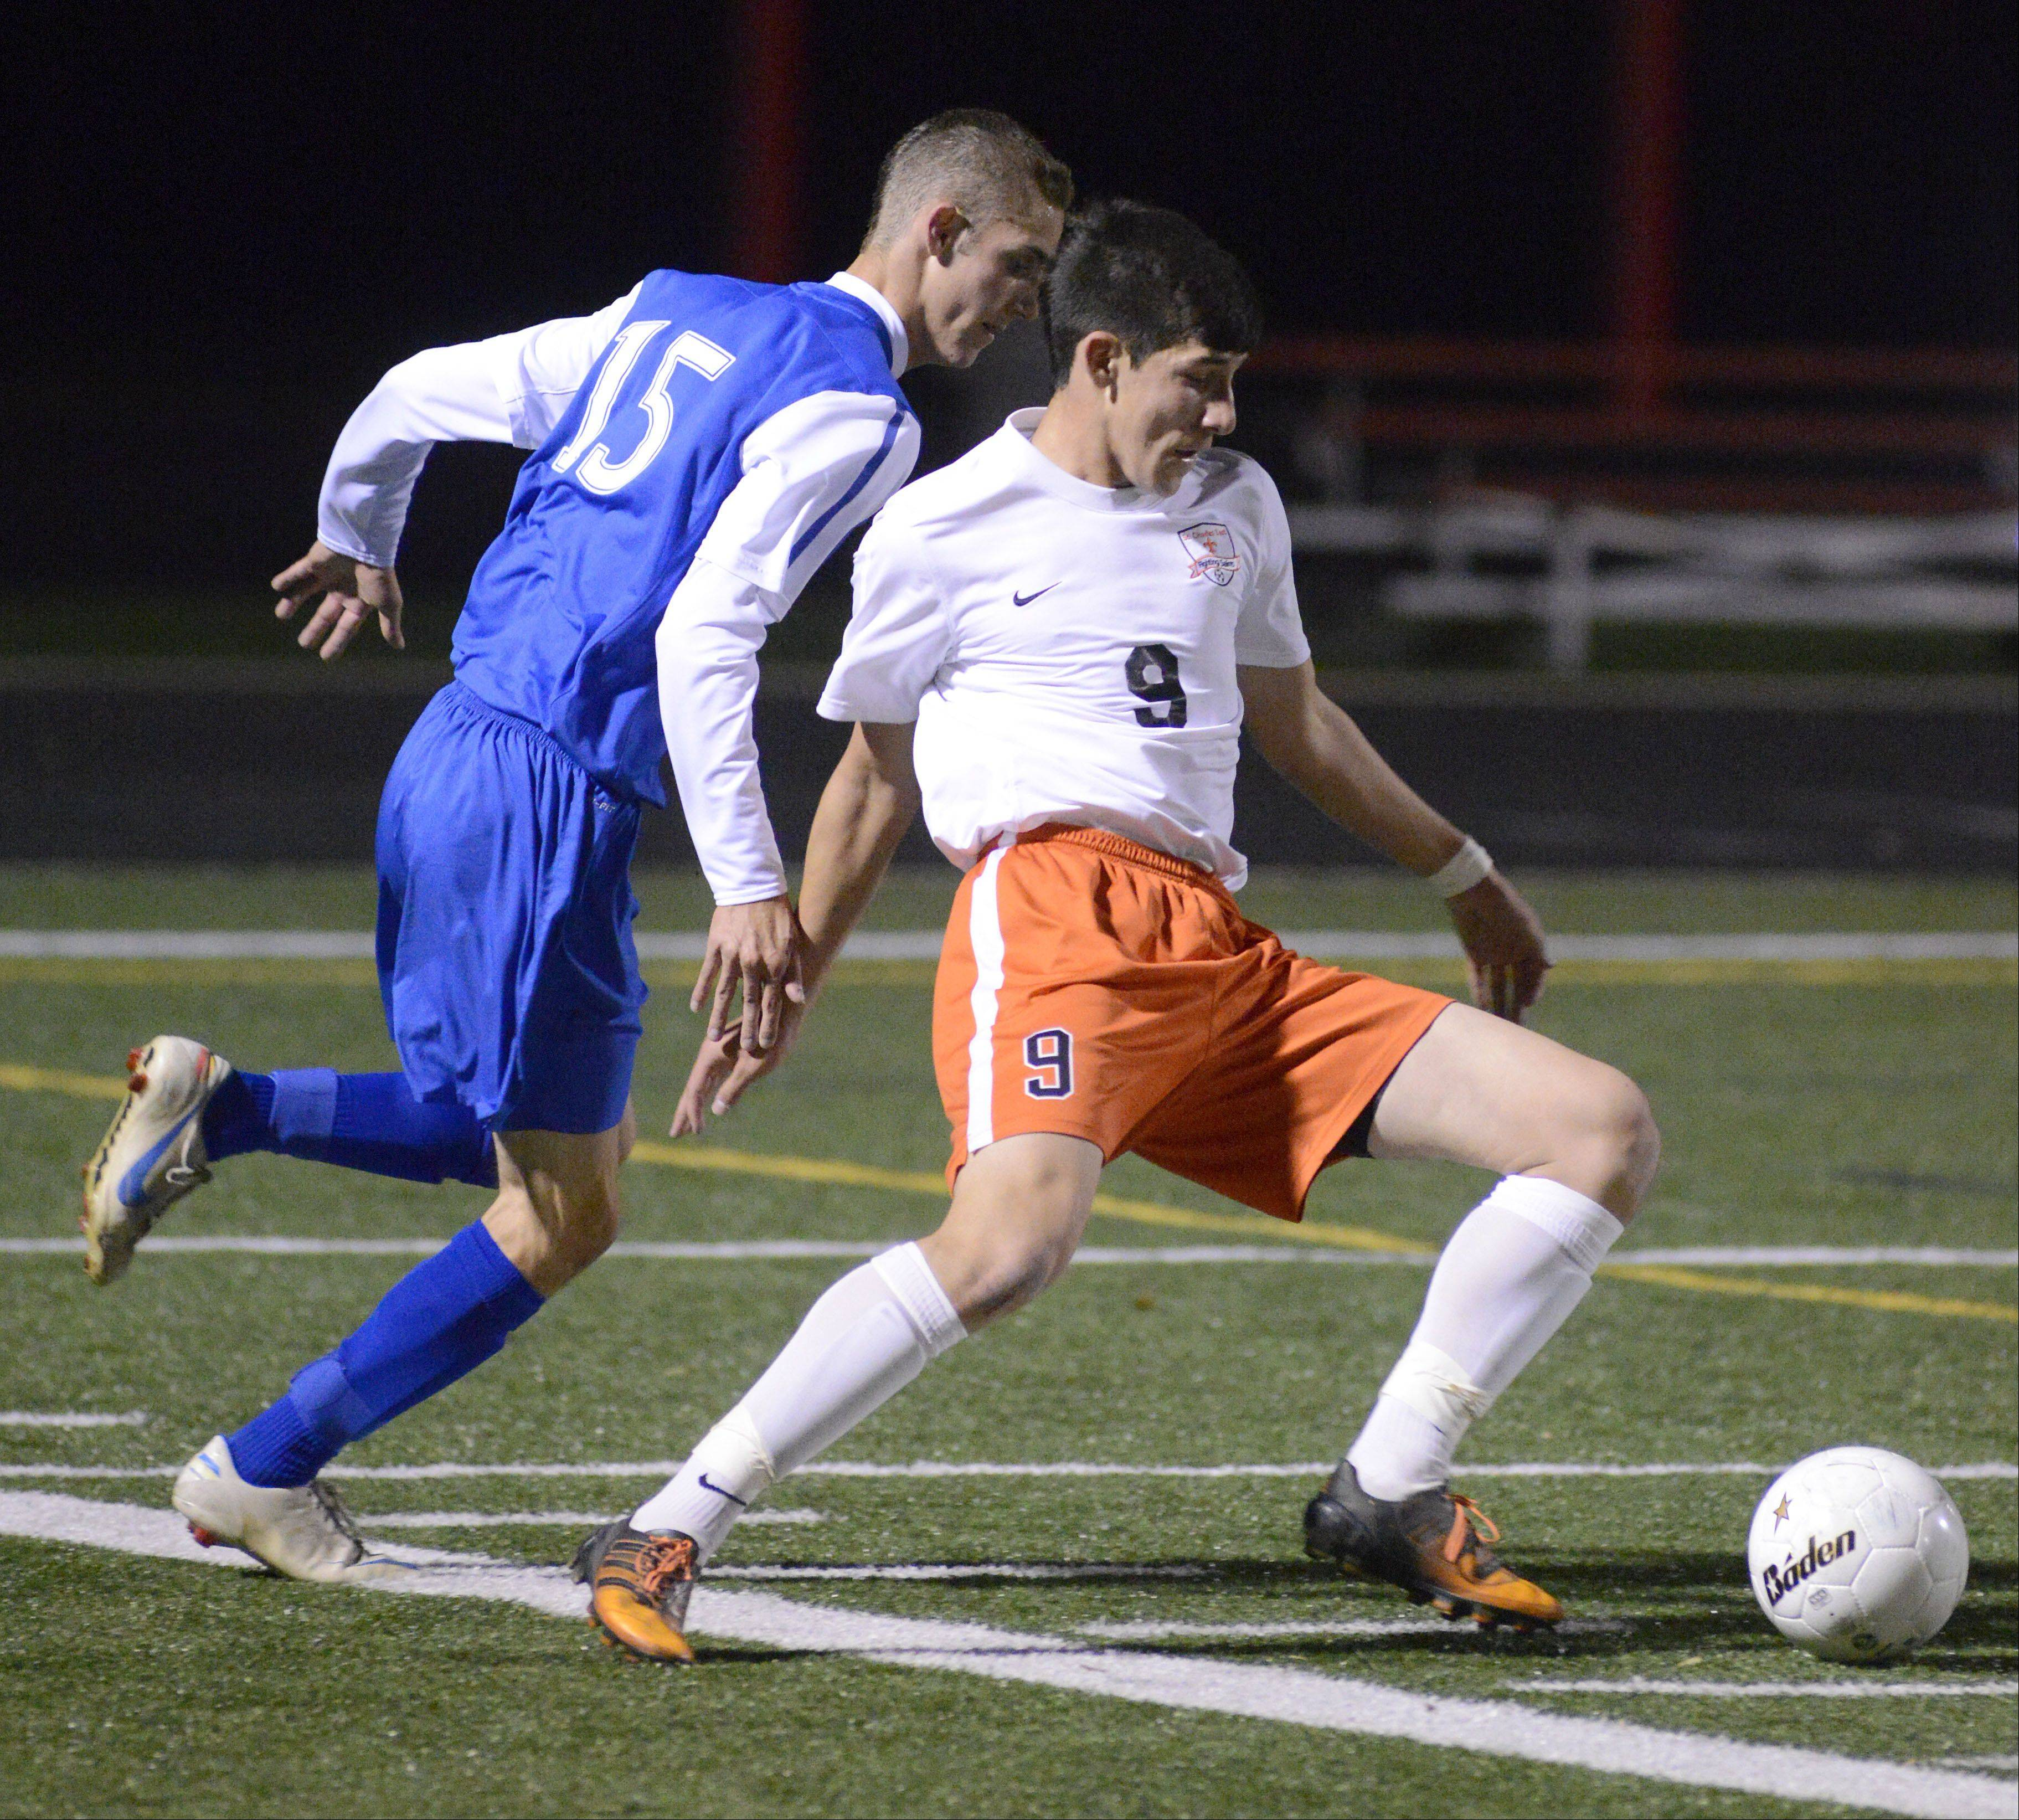 Wheaton North's Jeremy Stapleton and St. Charles East's Taylor Ortiz battle for the ball in the first half of the Schaumburg sectional semifinals on Tuesday, October 29.